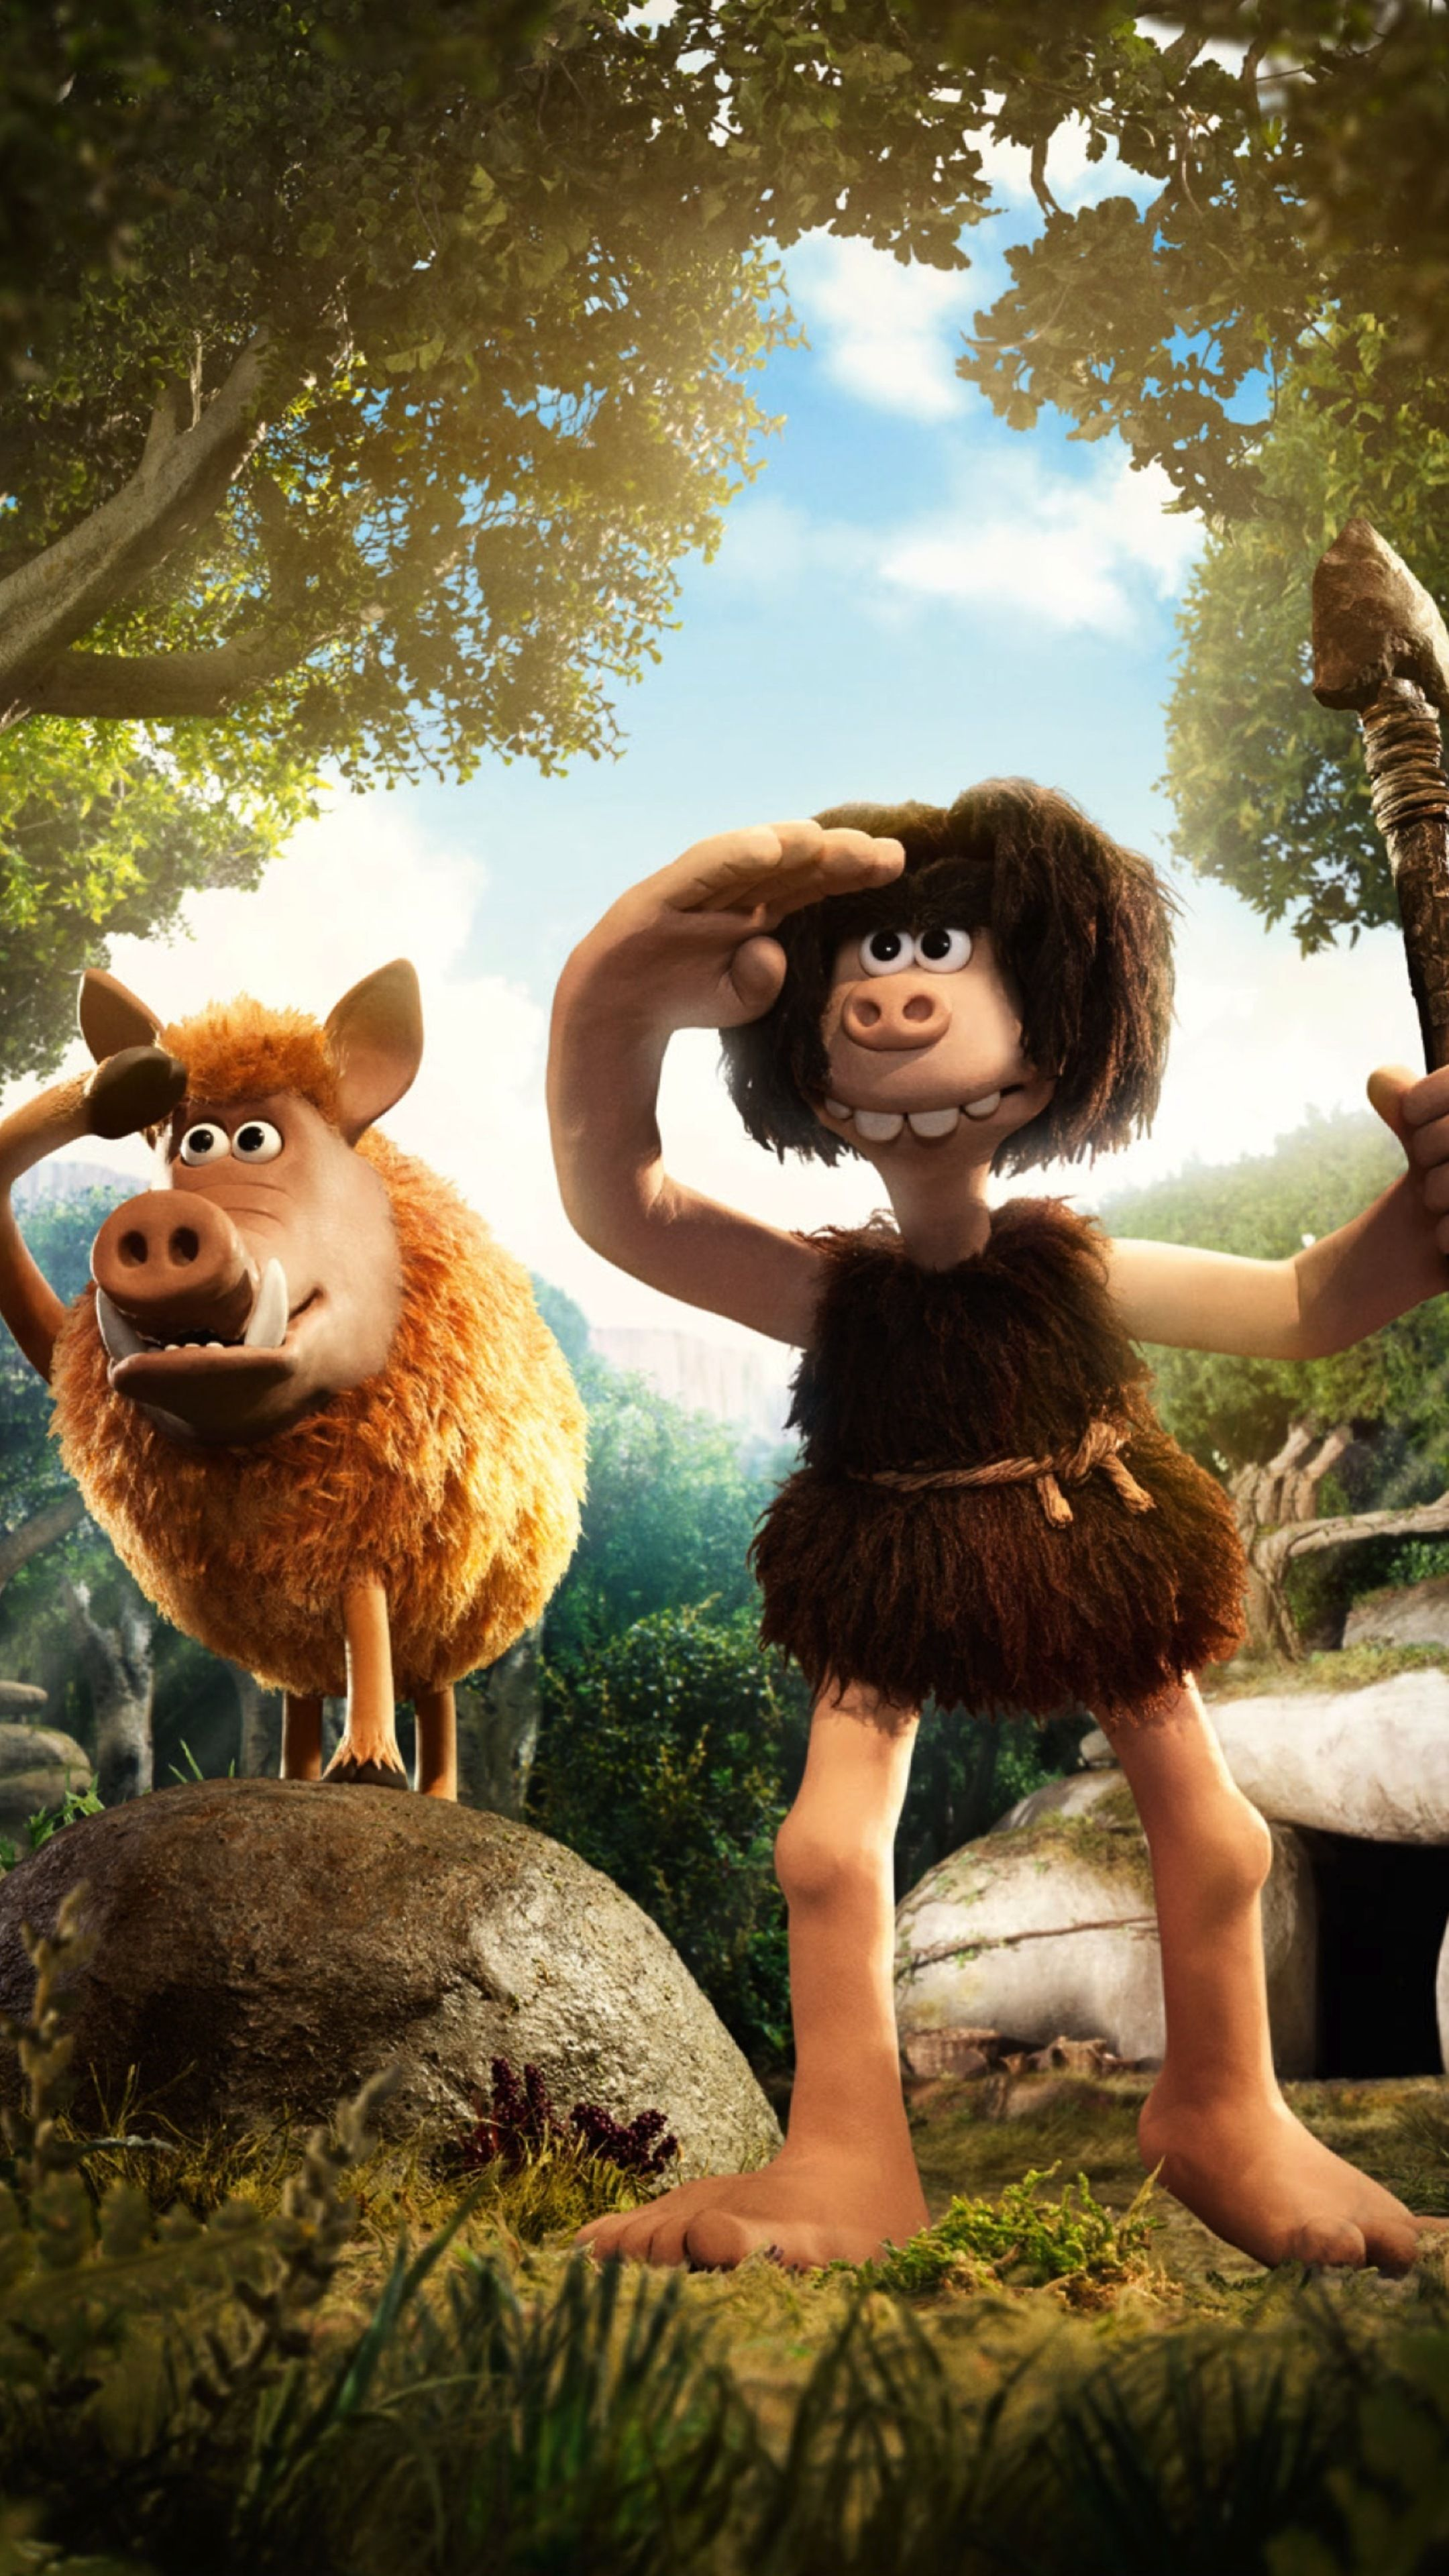 Early Man 2018 Movie In 2160x3840 Resolution English